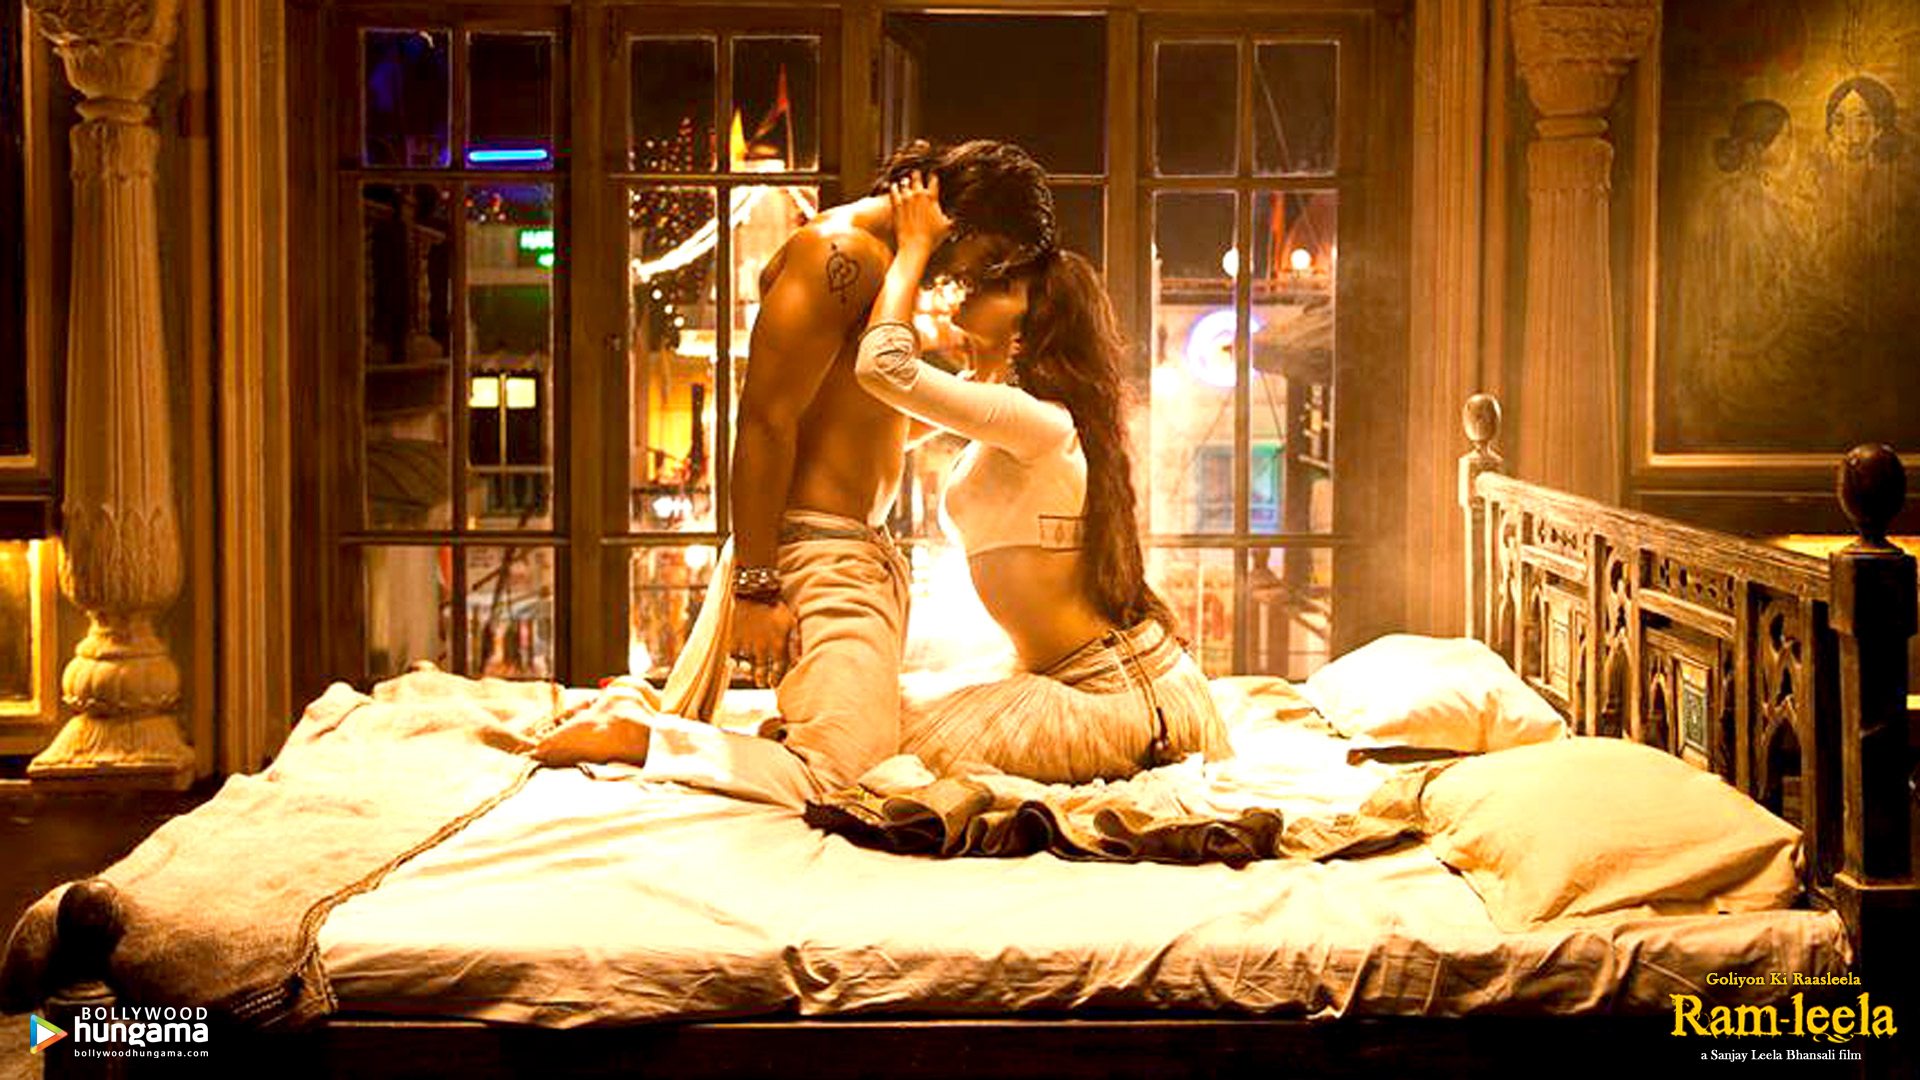 Rain hot bed scene wallpaper nackt image